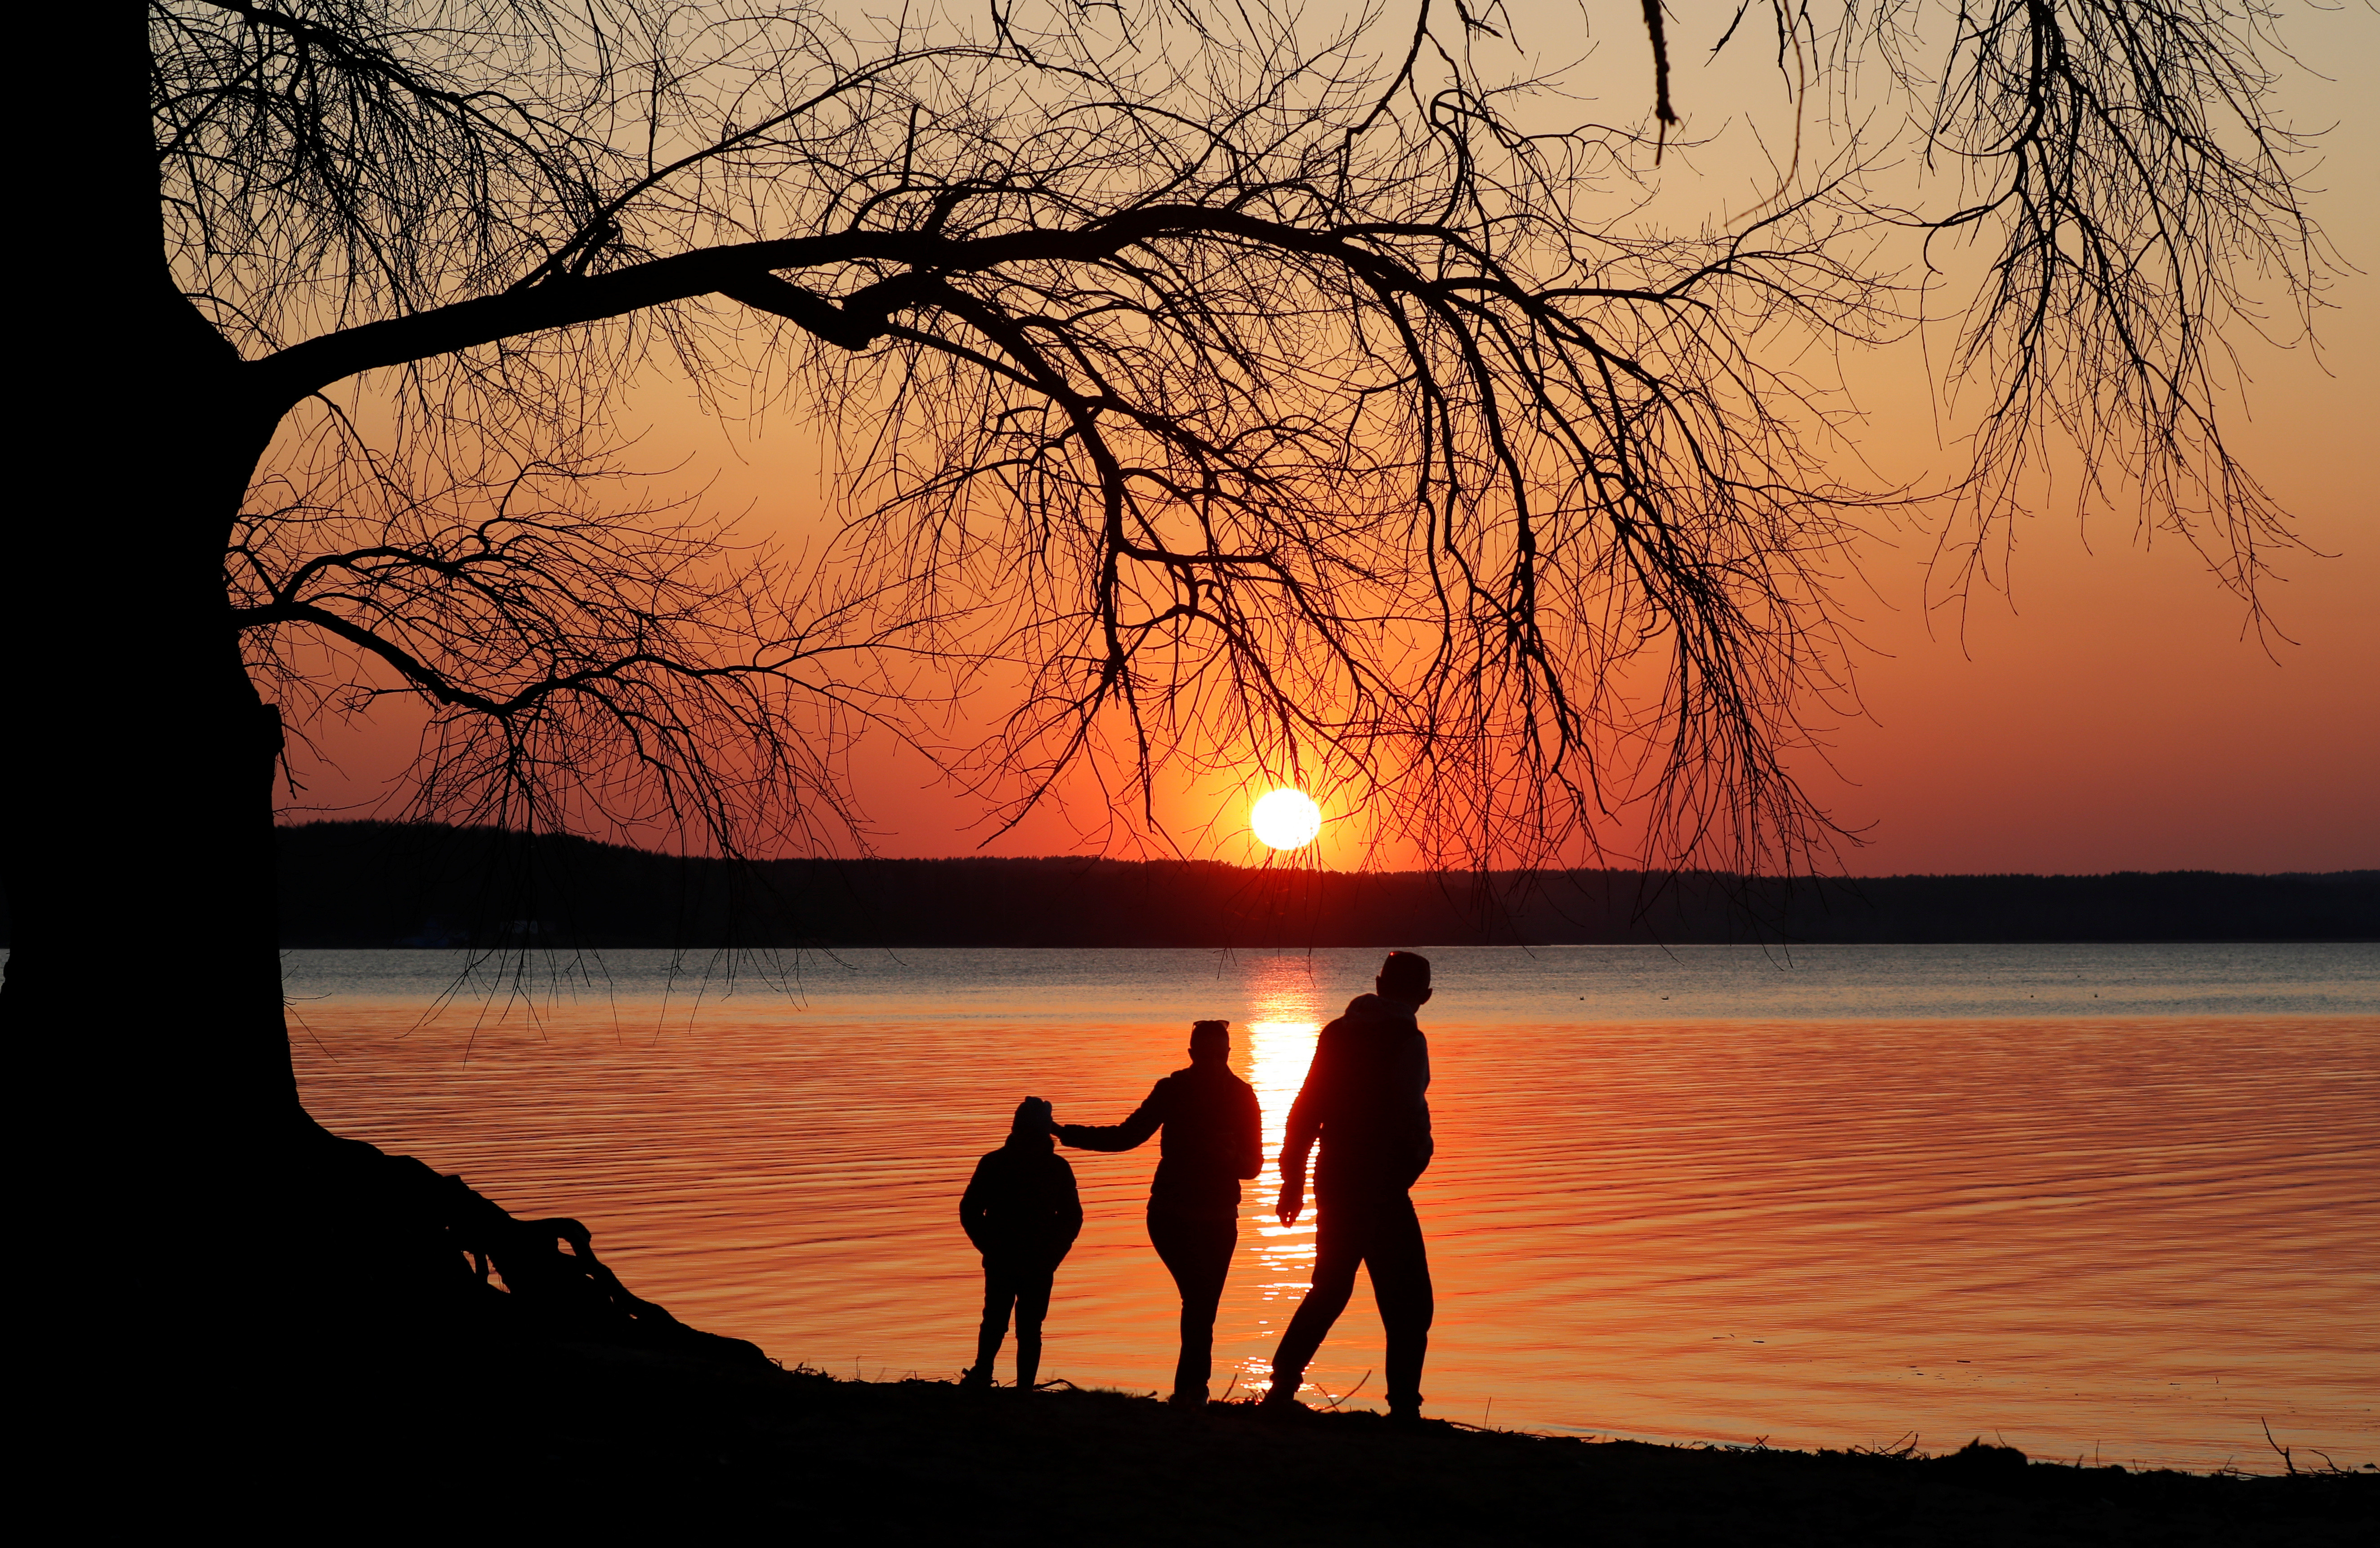 People enjoy sunset at a lake on the outskirts of Minsk, Belarus April 3, 2019.  REUTERS/Vasily Fedosenko - RC1433AE2070